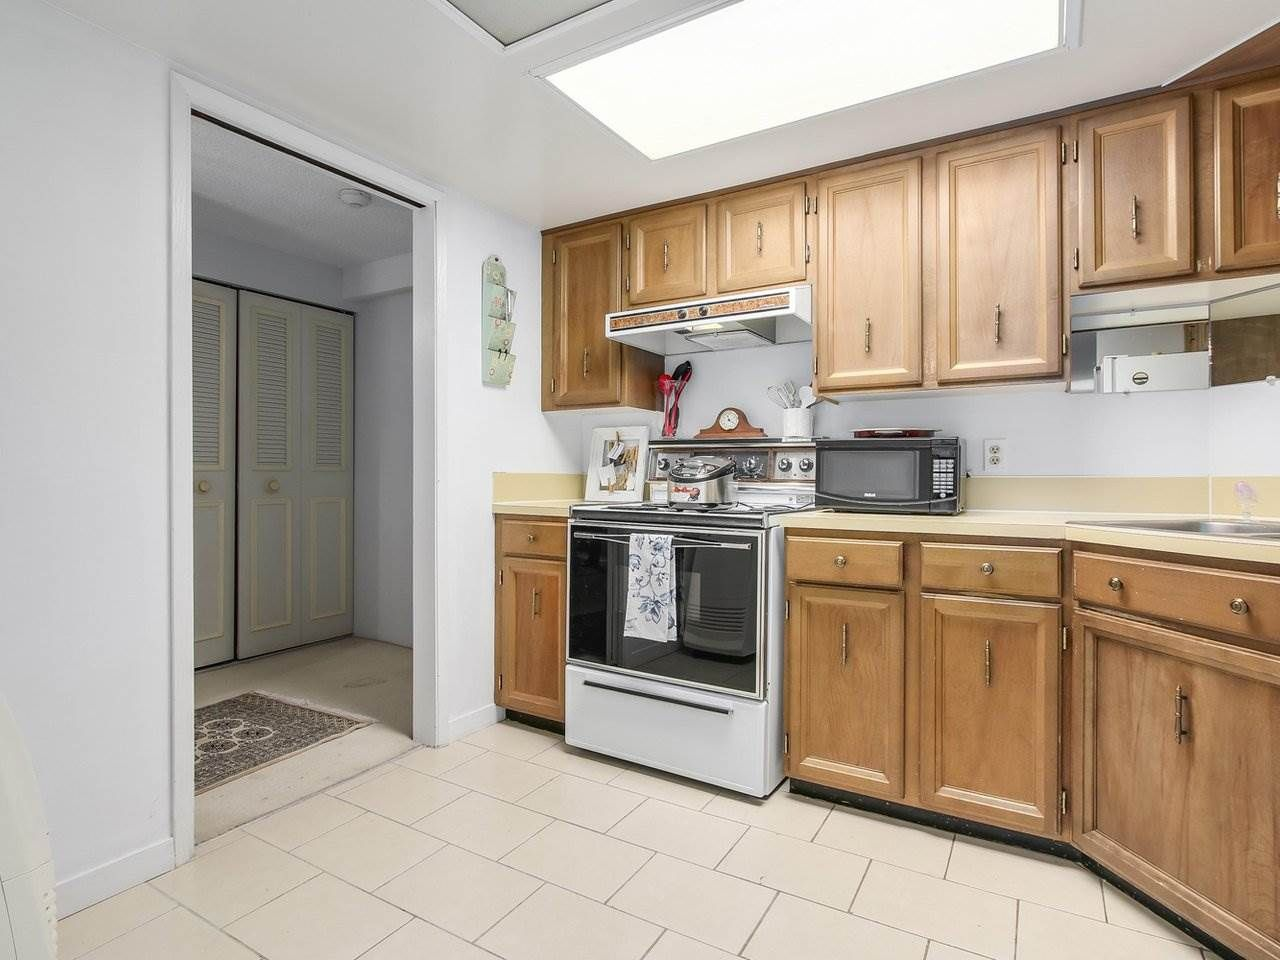 """Photo 6: Photos: 304 1480 FOSTER Street: White Rock Condo for sale in """"White Rock Square 1"""" (South Surrey White Rock)  : MLS®# R2231627"""